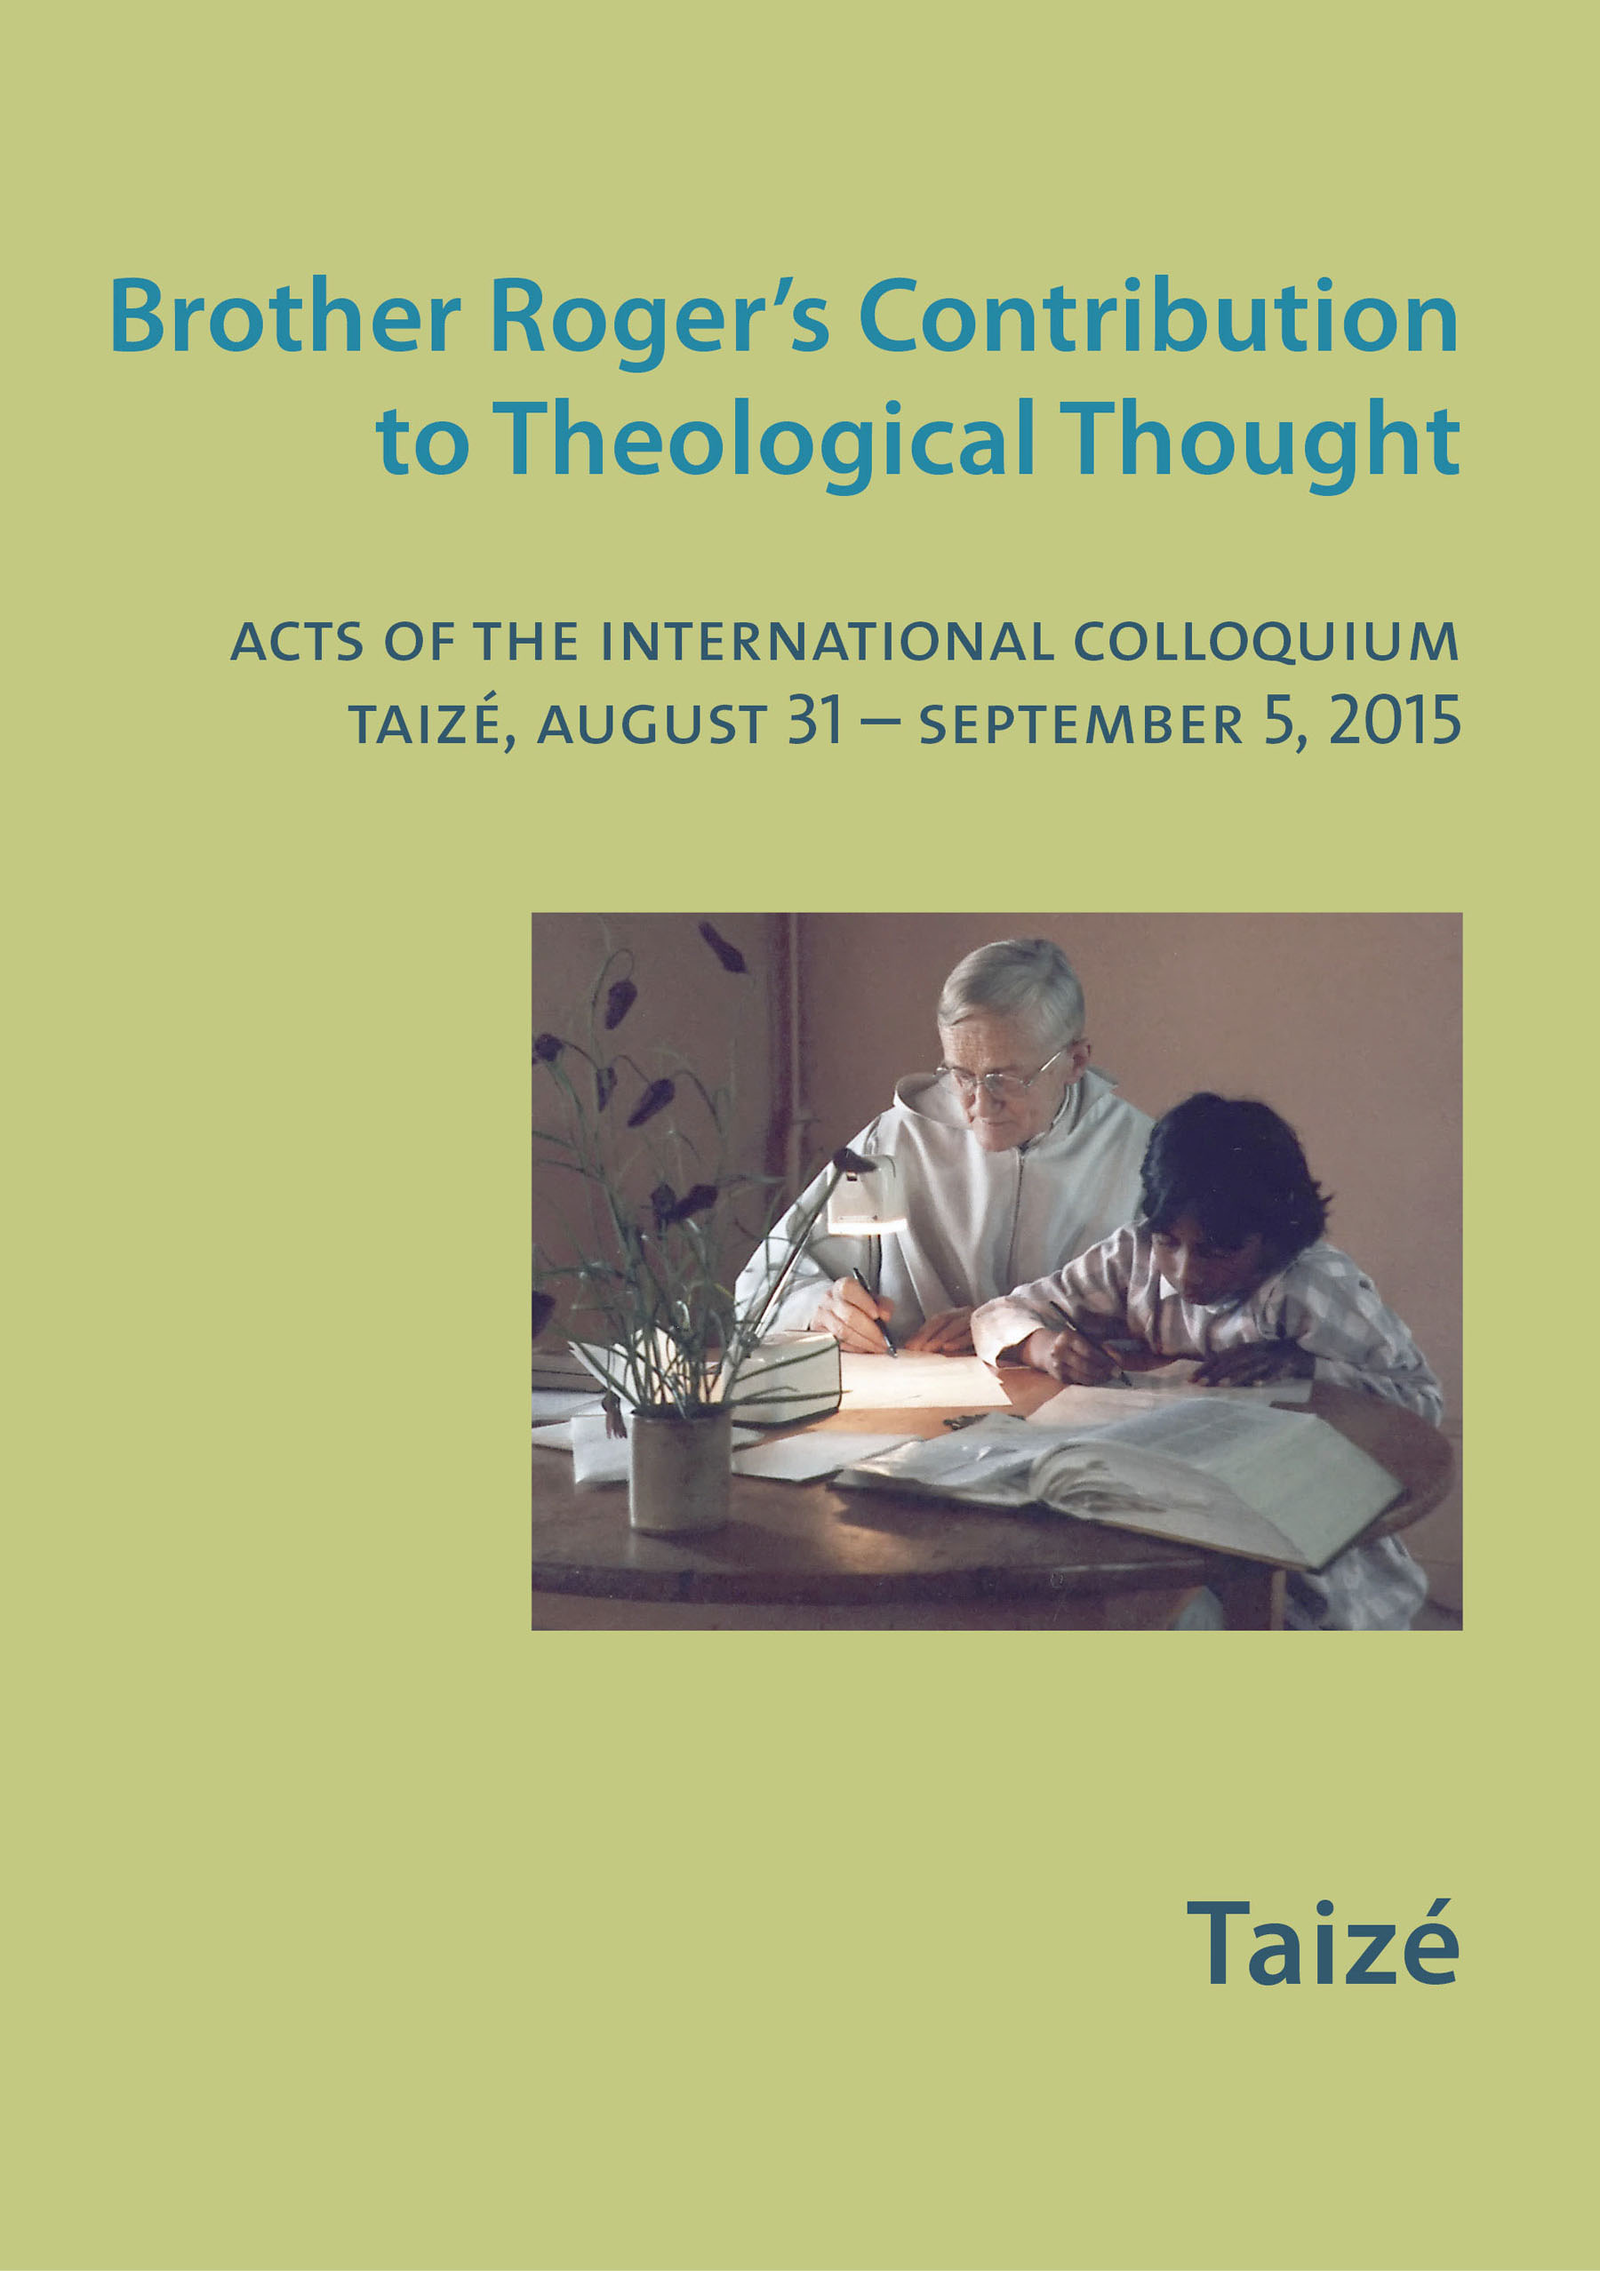 Brother Roger's Contribution to Theological Thought